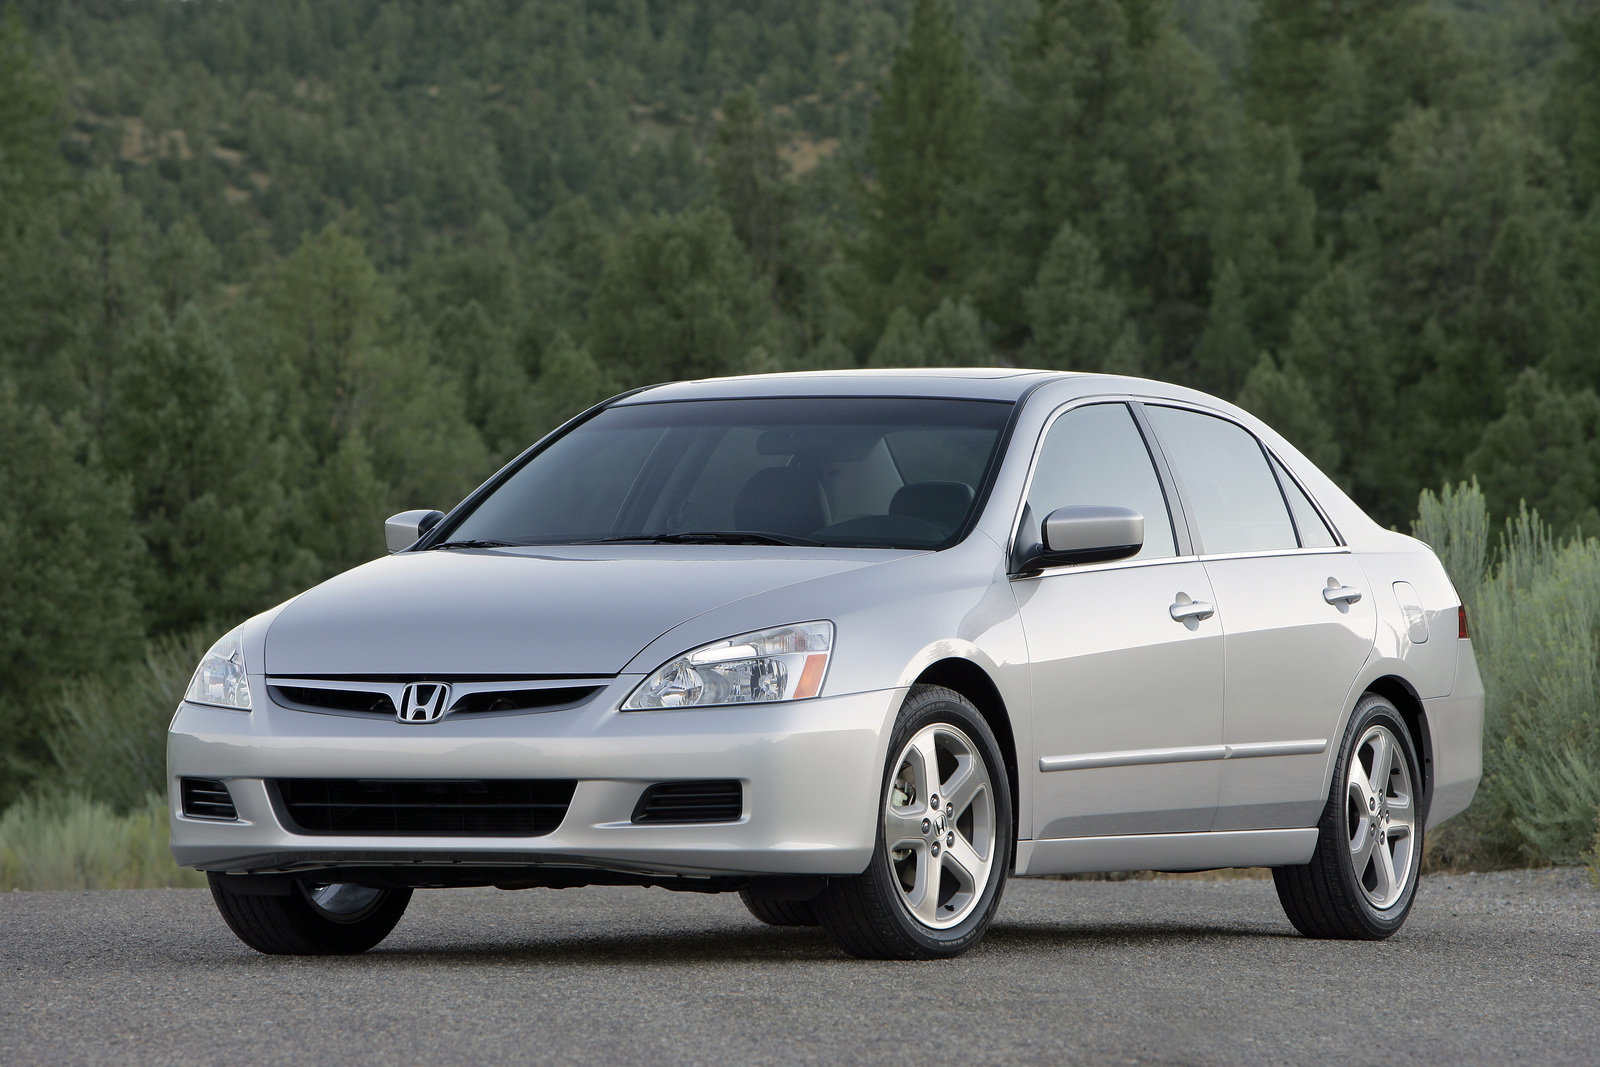 2006 honda accord review top speed. Black Bedroom Furniture Sets. Home Design Ideas